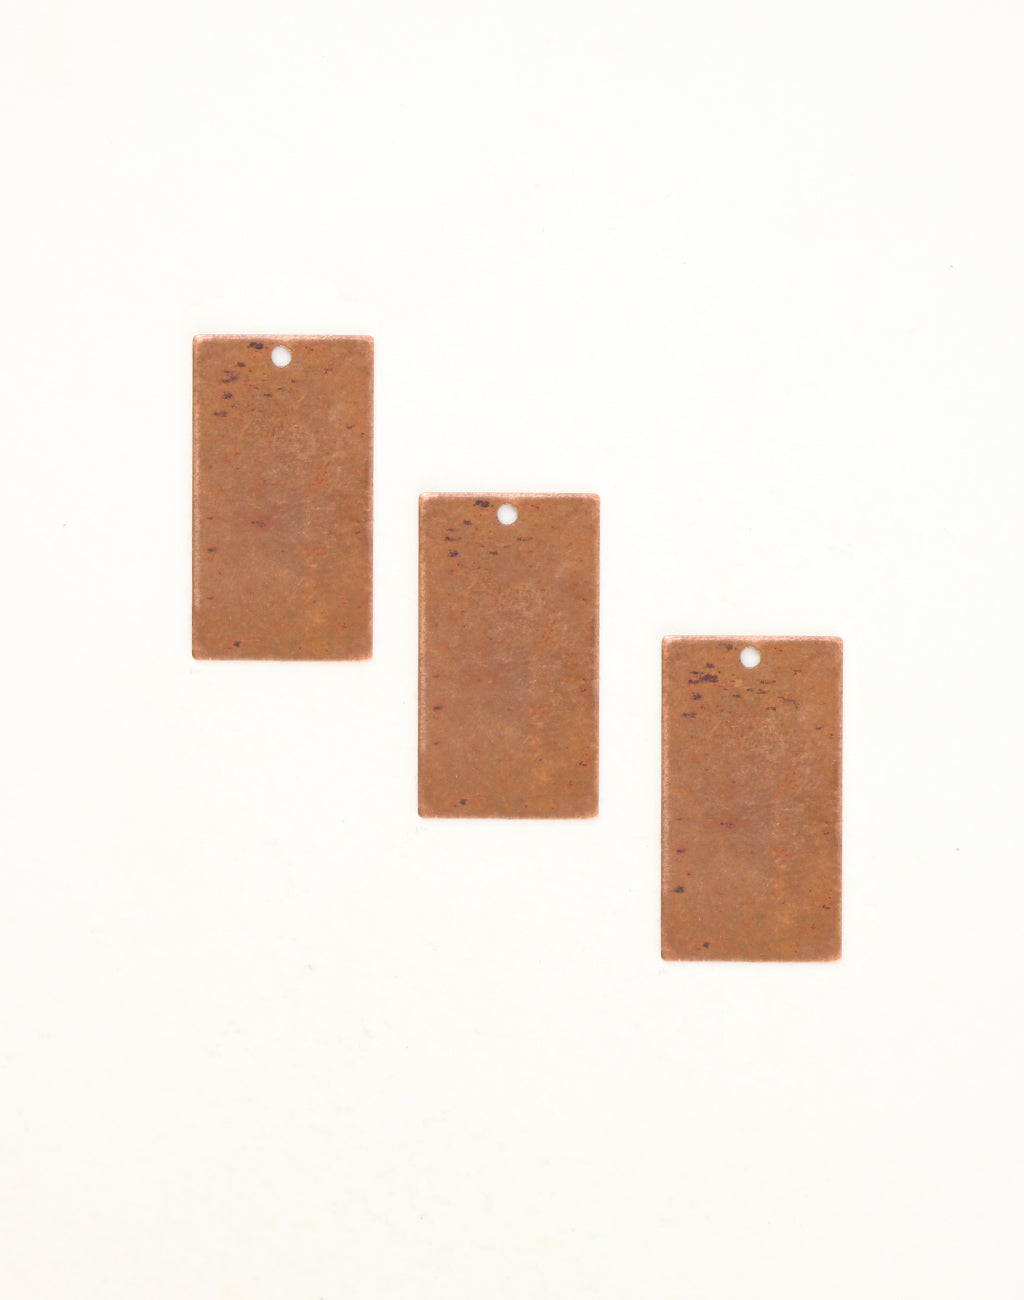 Small Rectangle, 22.5x12.5mm, (3pc)